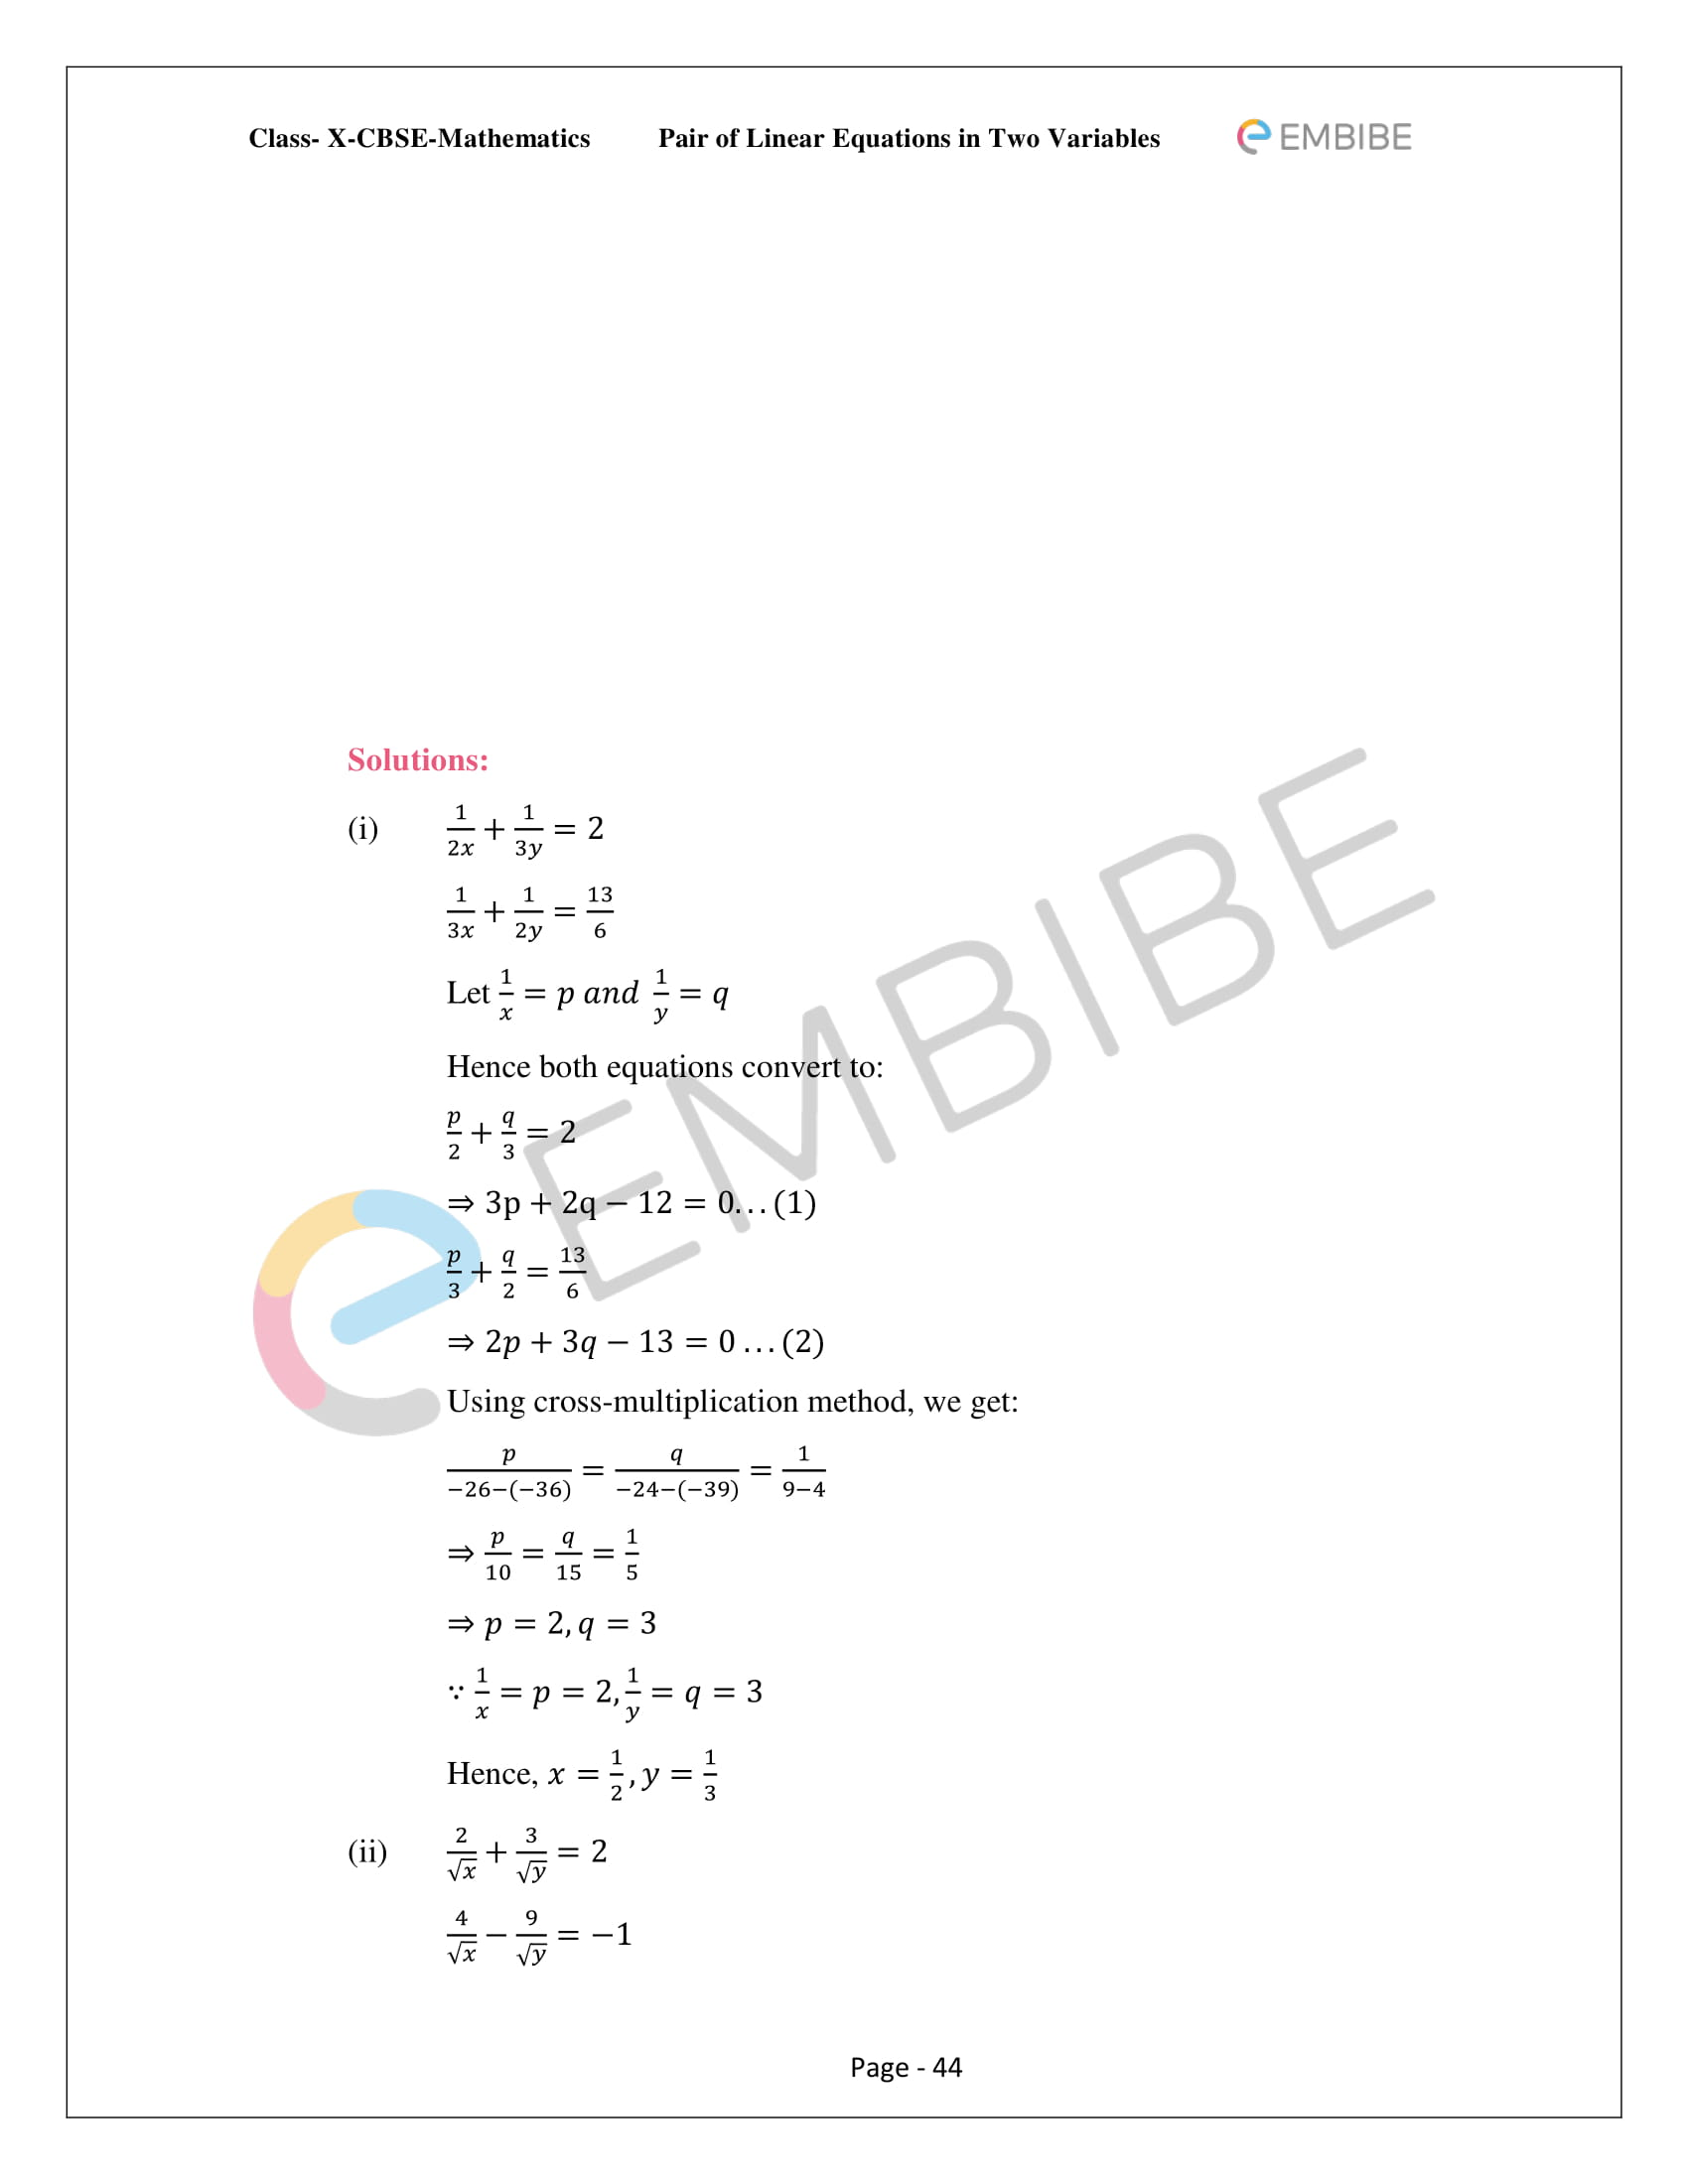 CBSE NCERT Solutions For Class 10 Maths Chapter 3 - Pair of Linear Equations In Two Variables - 44